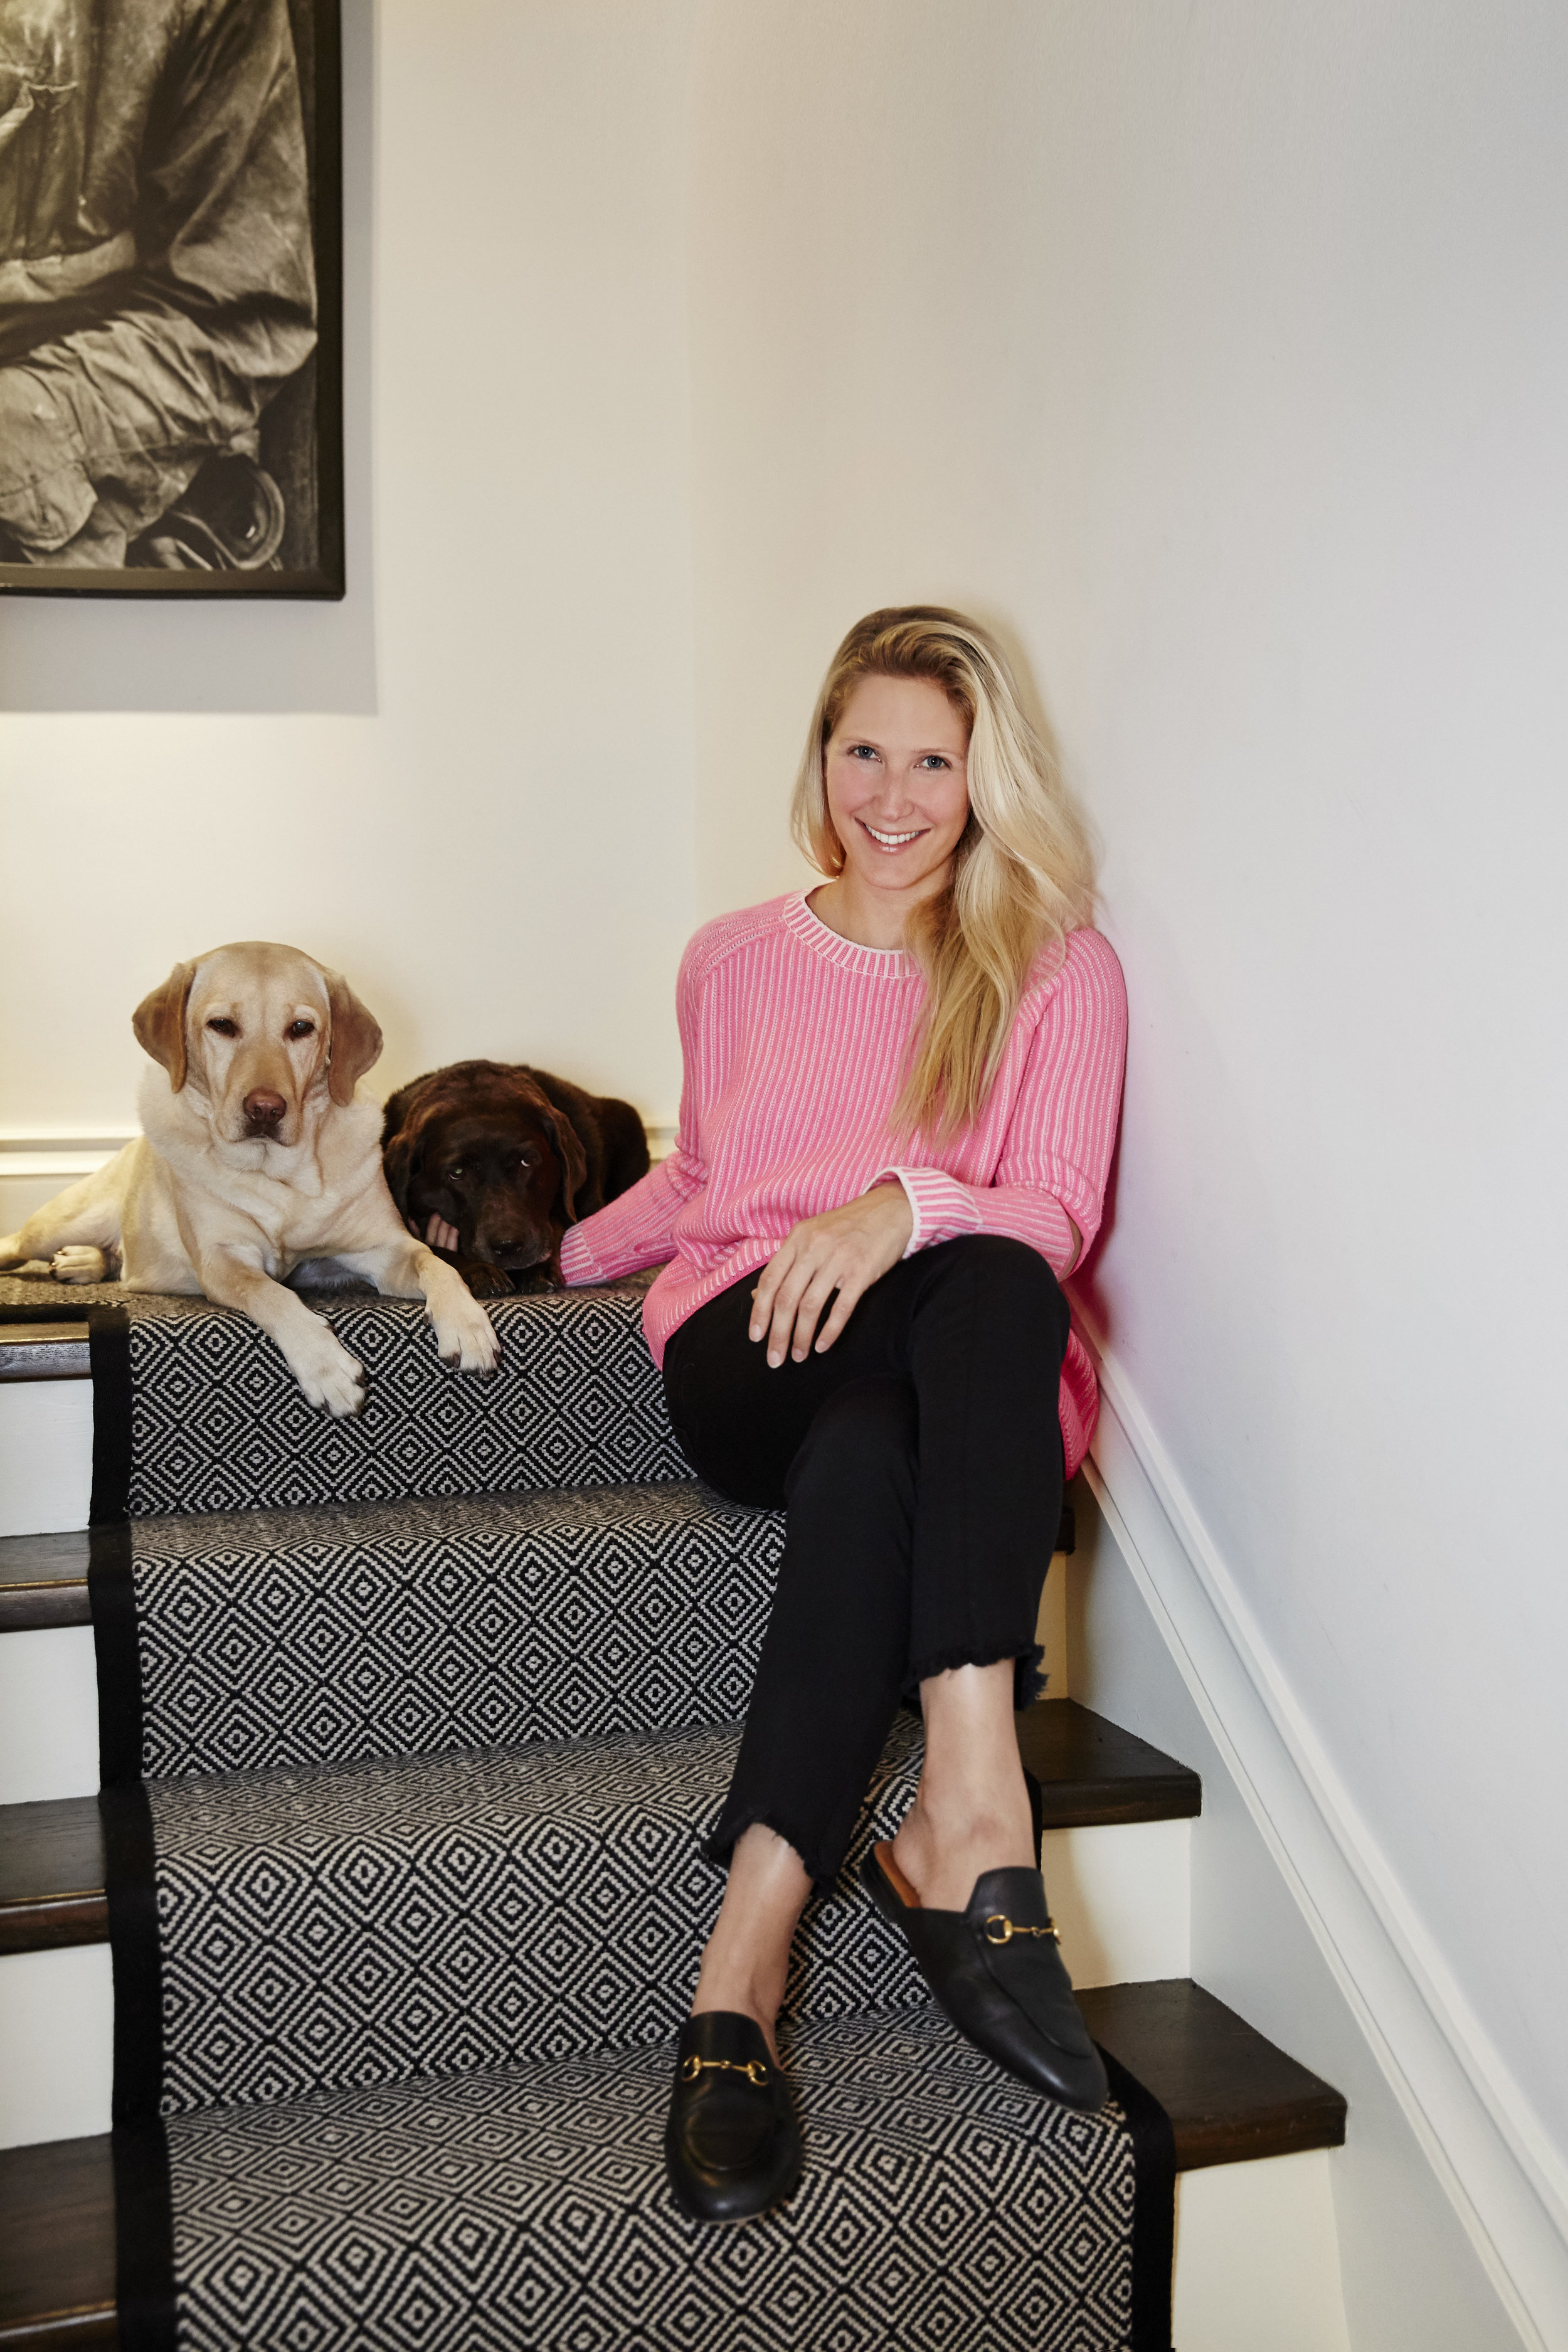 Leonora Bamford - The entrepreneur,founder of My-Baba and super glam mother of 3,gives us an insight into her life at home and at work, sharing her top tips on juggling a busy life....from her favourite quick &easy kids recipes, to how she unwinds after a frantic day...